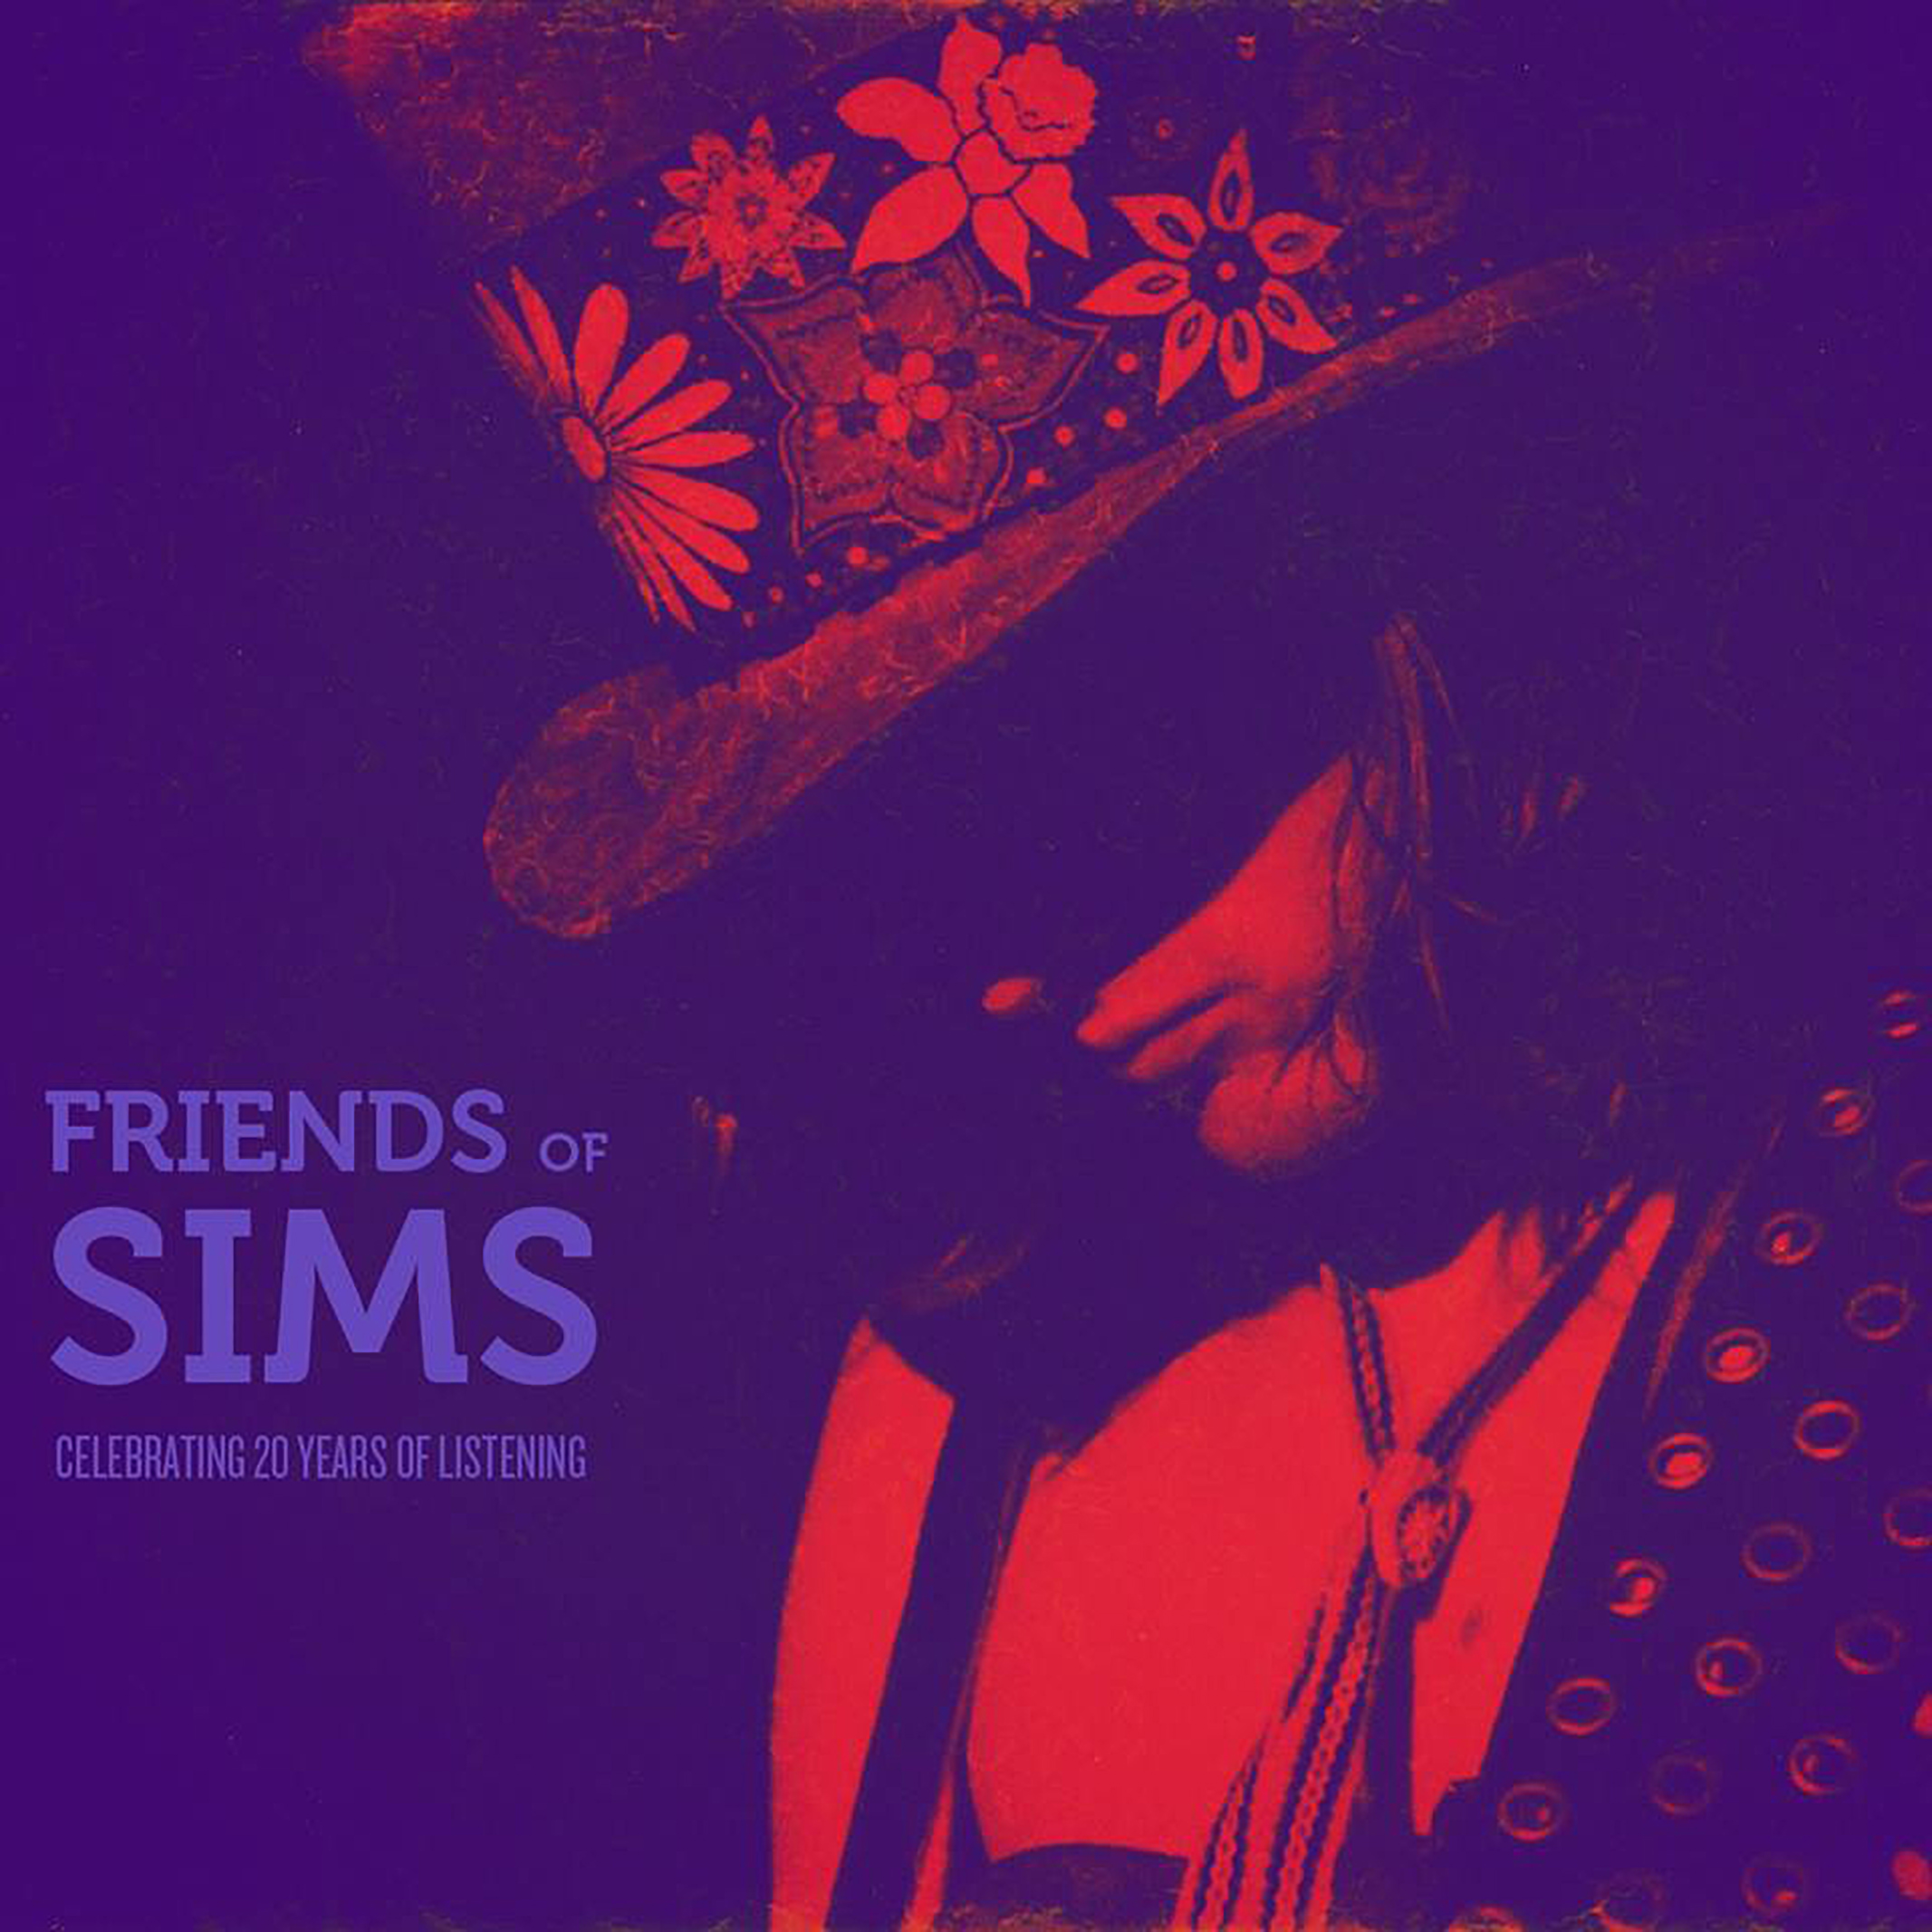 Friends of sims -